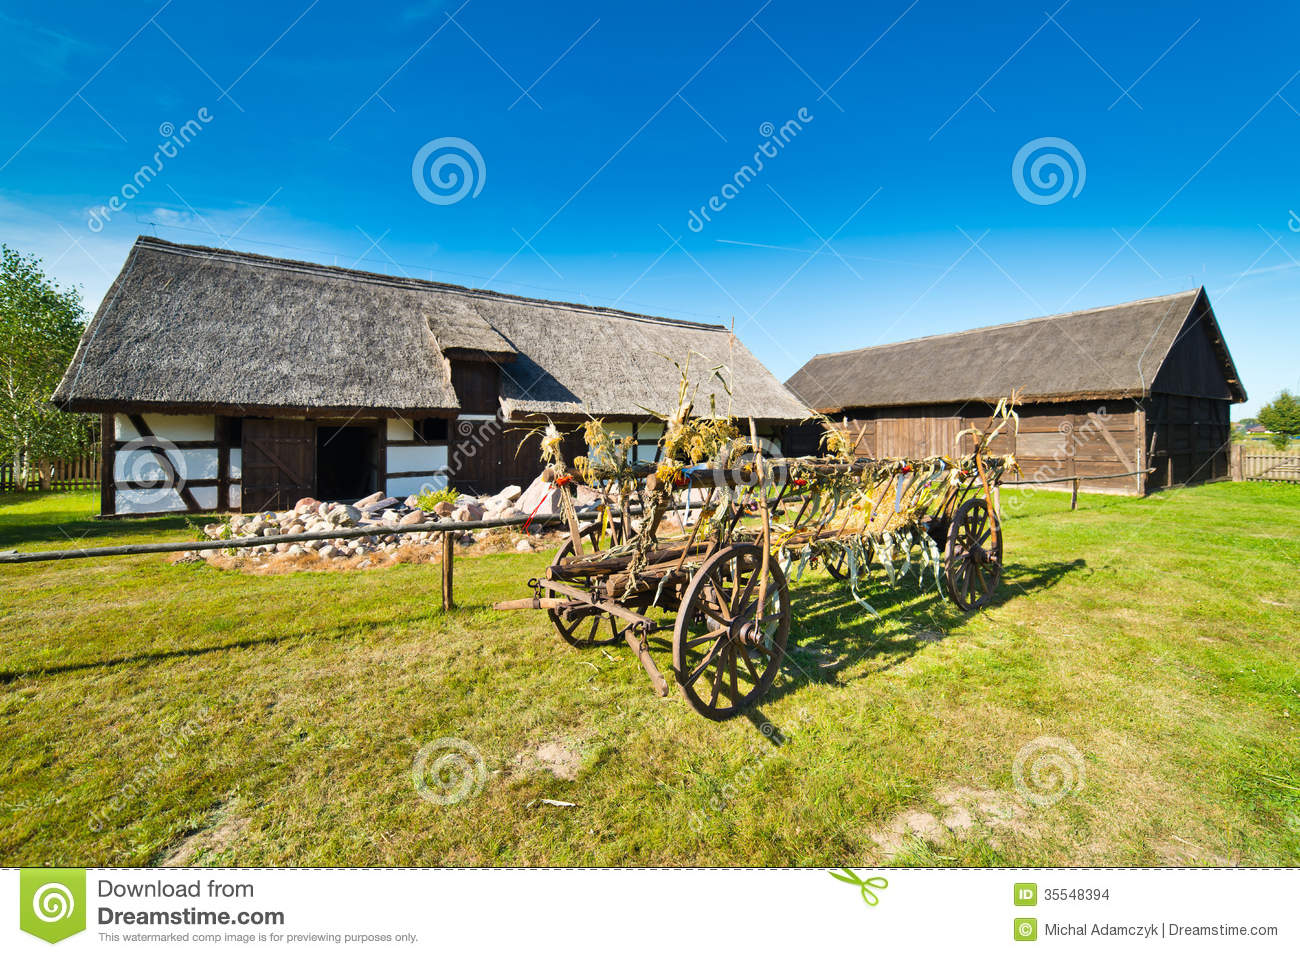 rural tourism in poland International fair of rural and agricultural tourism is going to be organised at targikielce exhibition & congress centre, kielce, poland from 20 apr 2018 to 22 apr 2018 this expo is going to be a 3 day event.